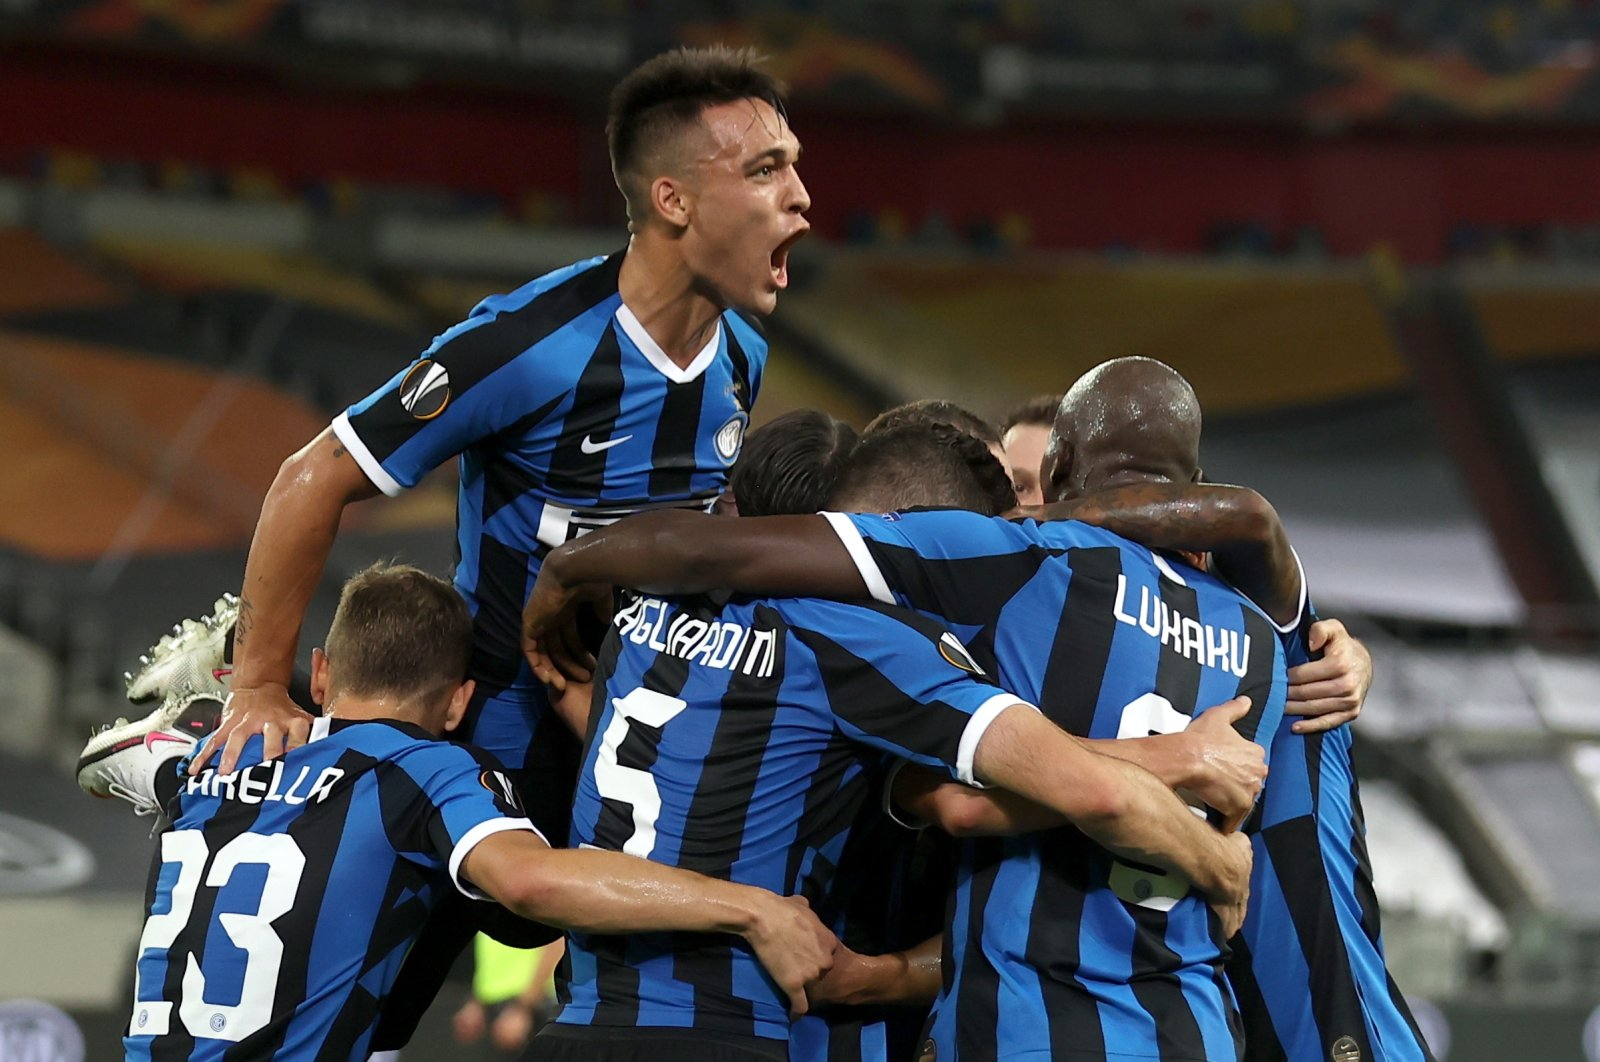 Inter Milan players celebrate a goal during the UEFA Europa League semifinal match against Shakhtar Donetsk in Dusseldorf, Germany, Aug. 17, 2020. (EPA Photo)